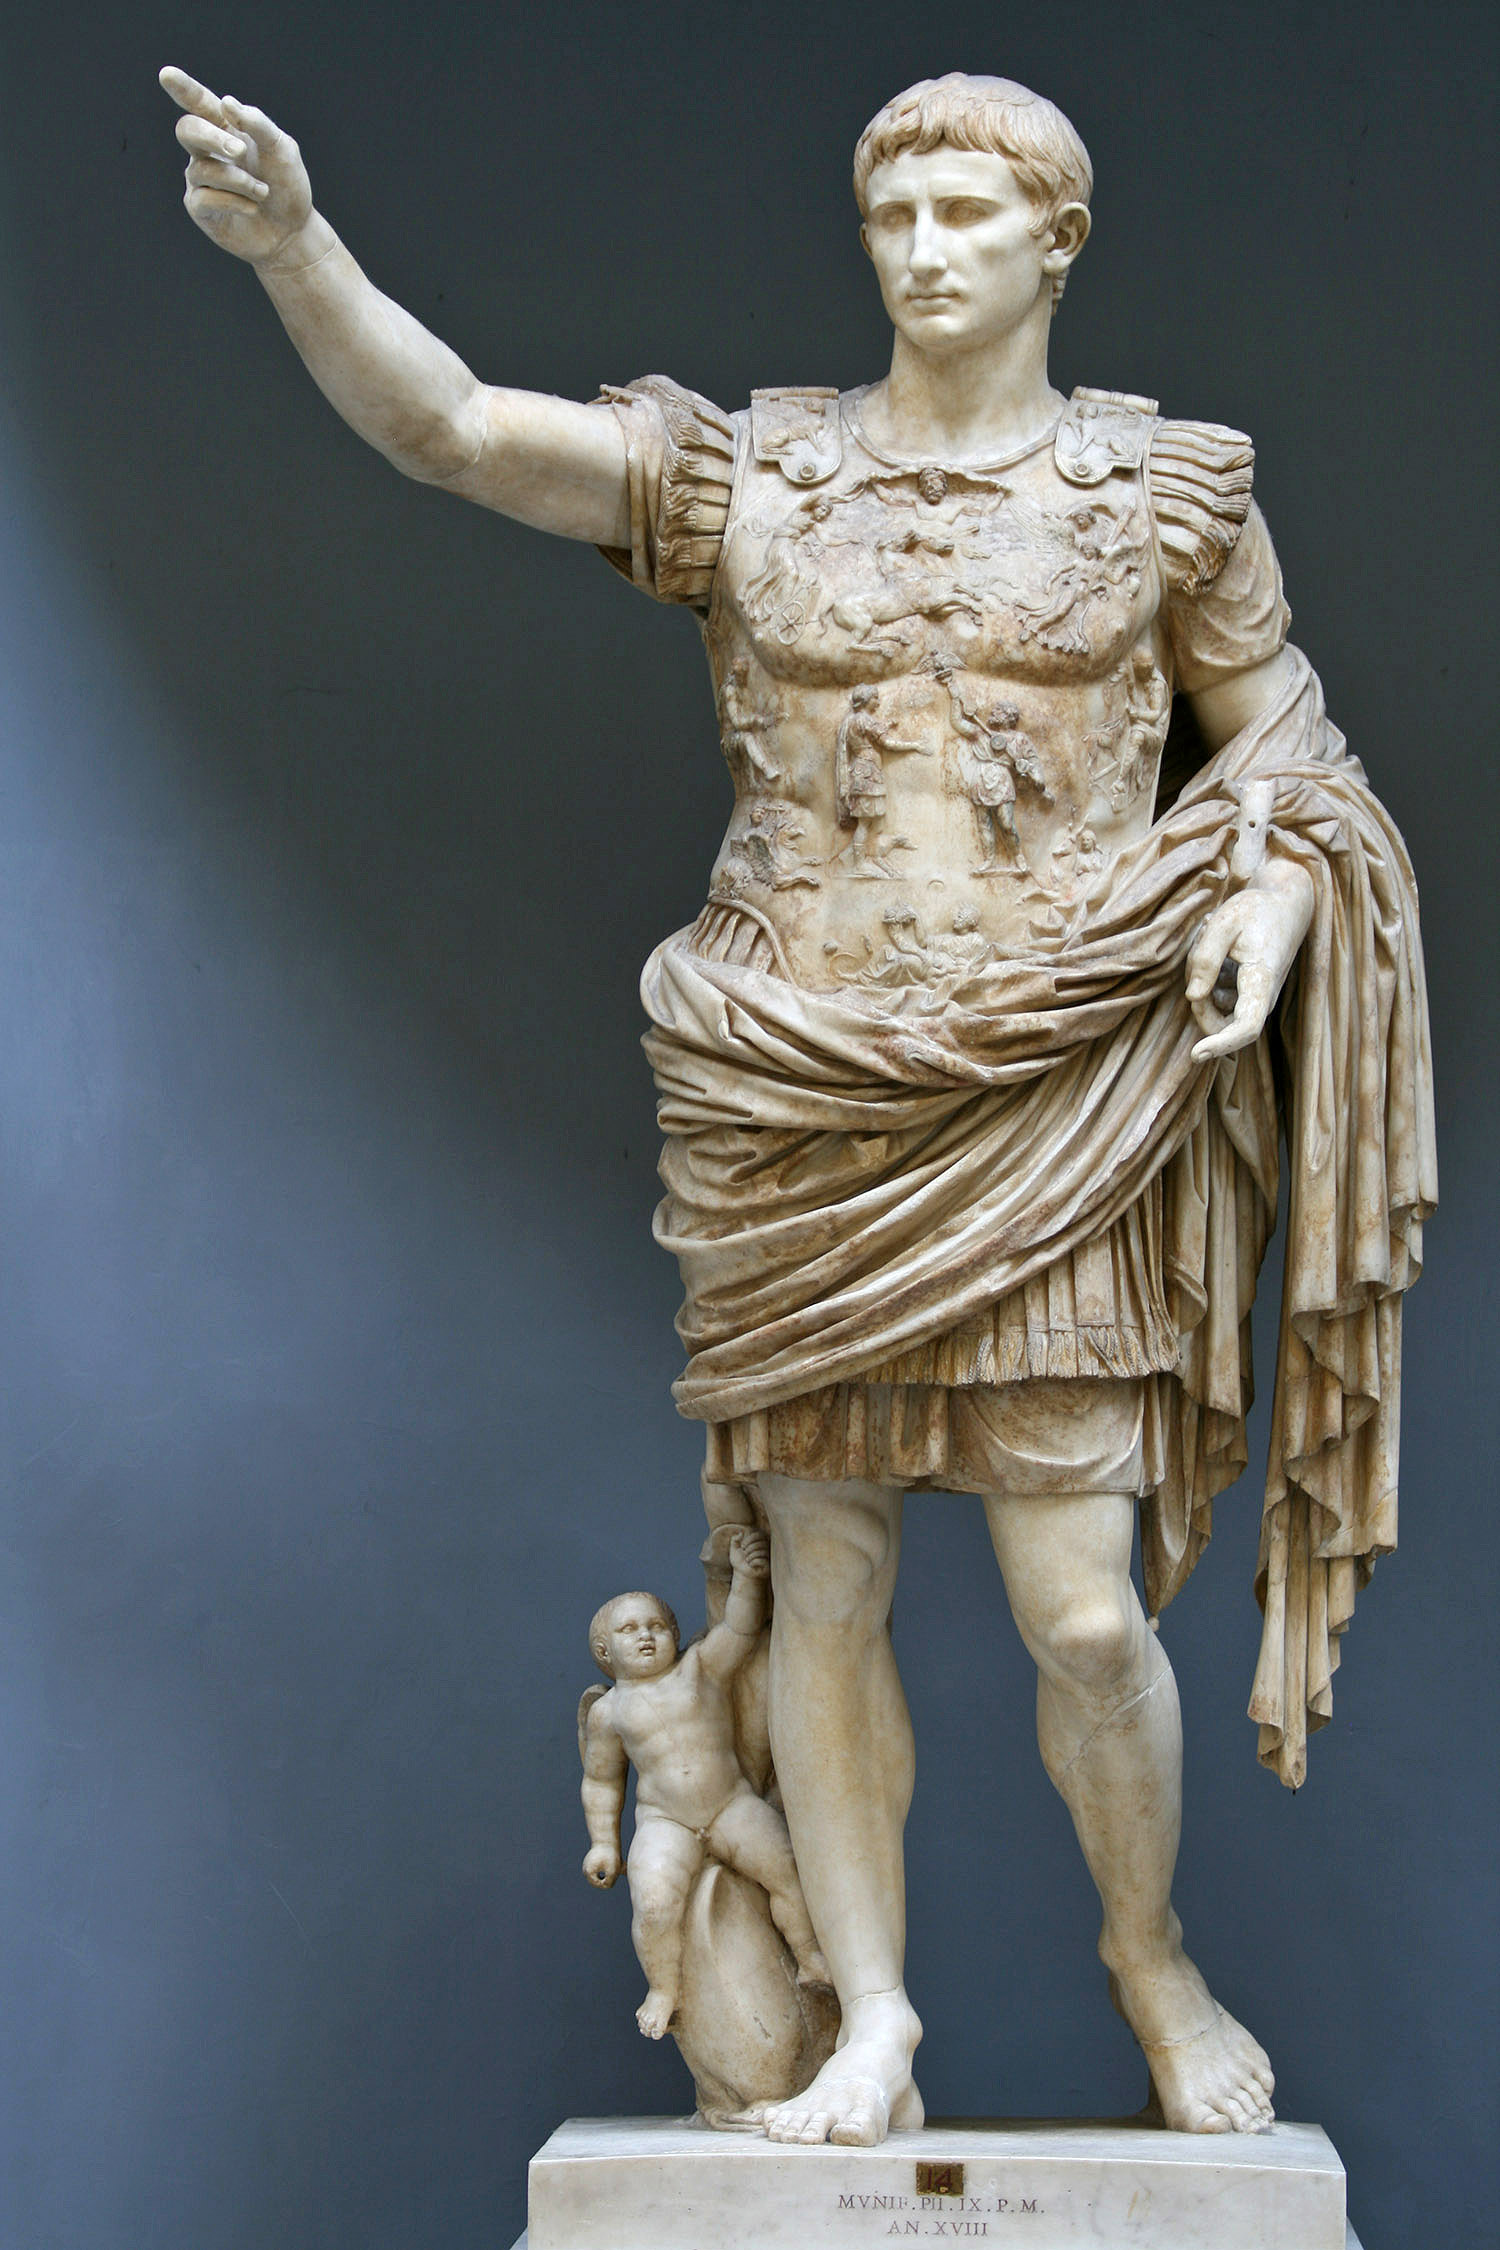 https://upload.wikimedia.org/wikipedia/commons/e/eb/Statue-Augustus.jpg